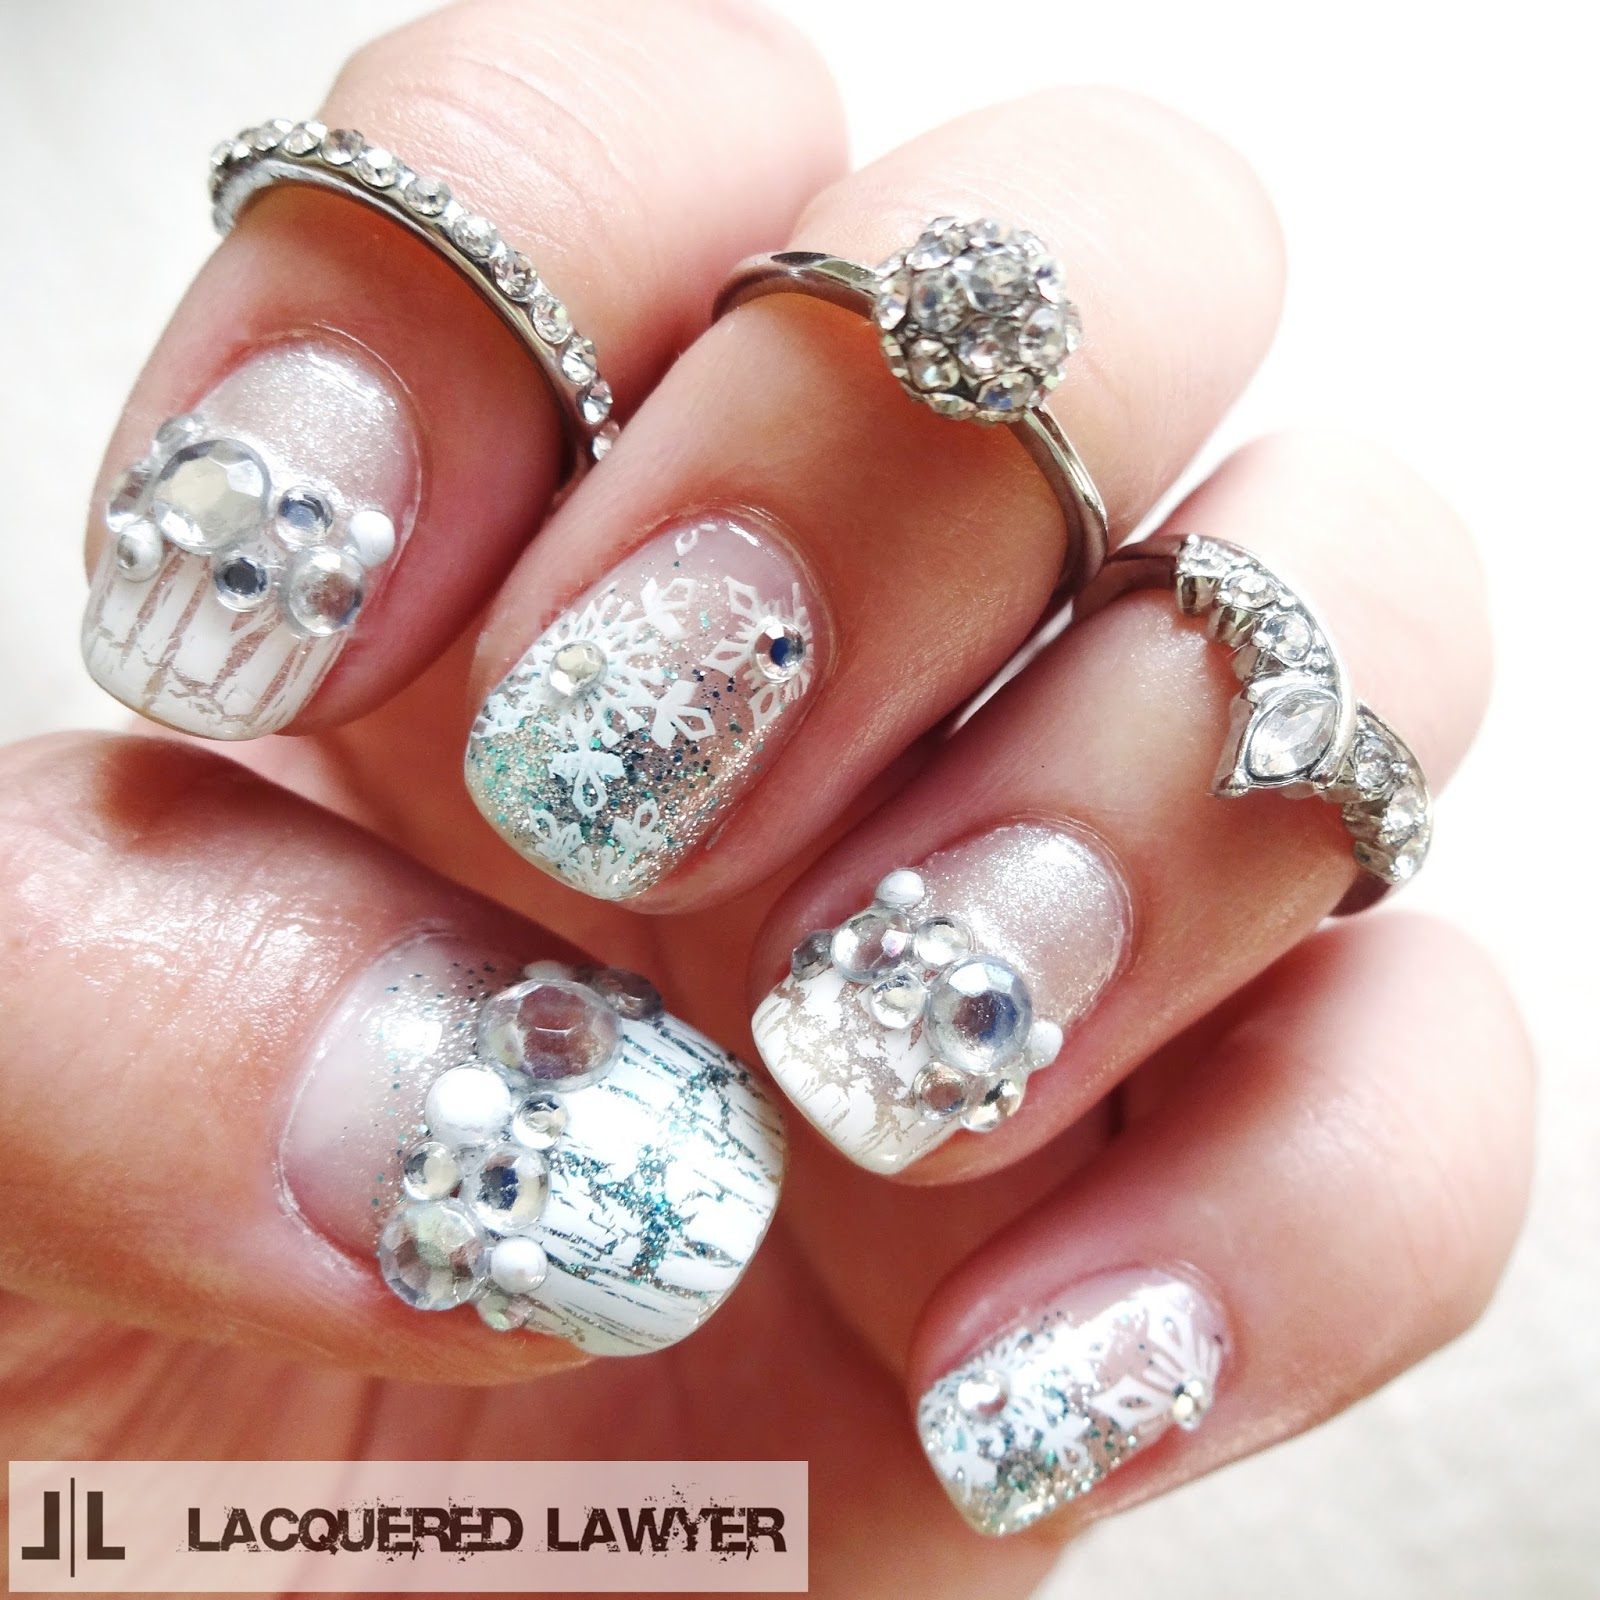 Lacquered lawyer nail art blog ice queen ice queen nail art prinsesfo Images